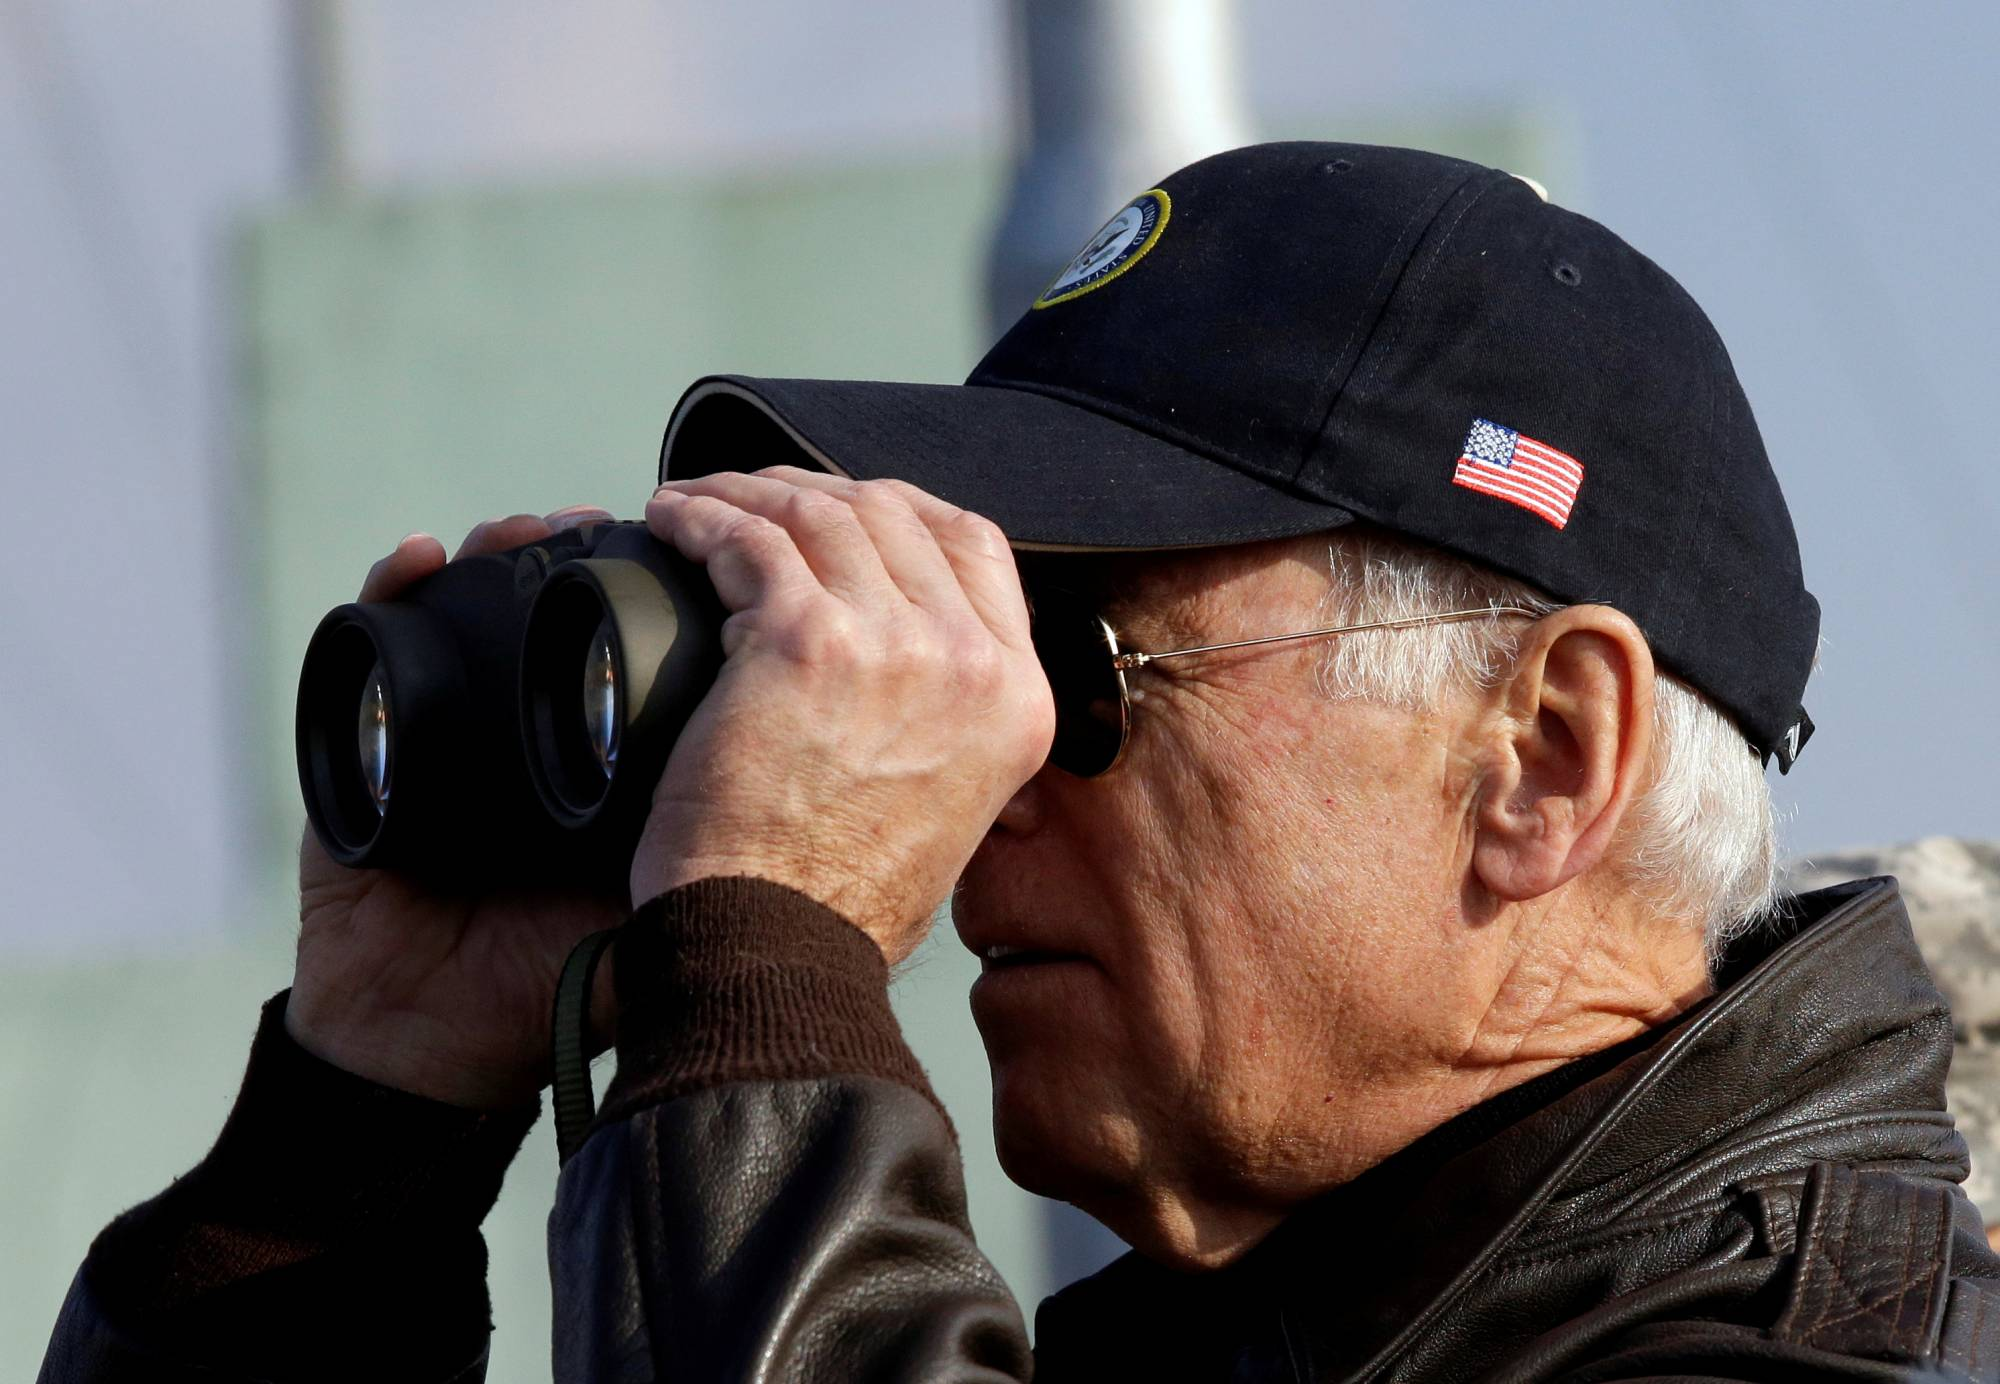 Joe Biden, U.S. vice president at the time, looks through binoculars toward North Korea from Observation Post Ouellette during a tour of the Demilitarized Zone, the military border separating the two Koreas, in Panmunjom, South Korea, in December 2013.  | REUTERS